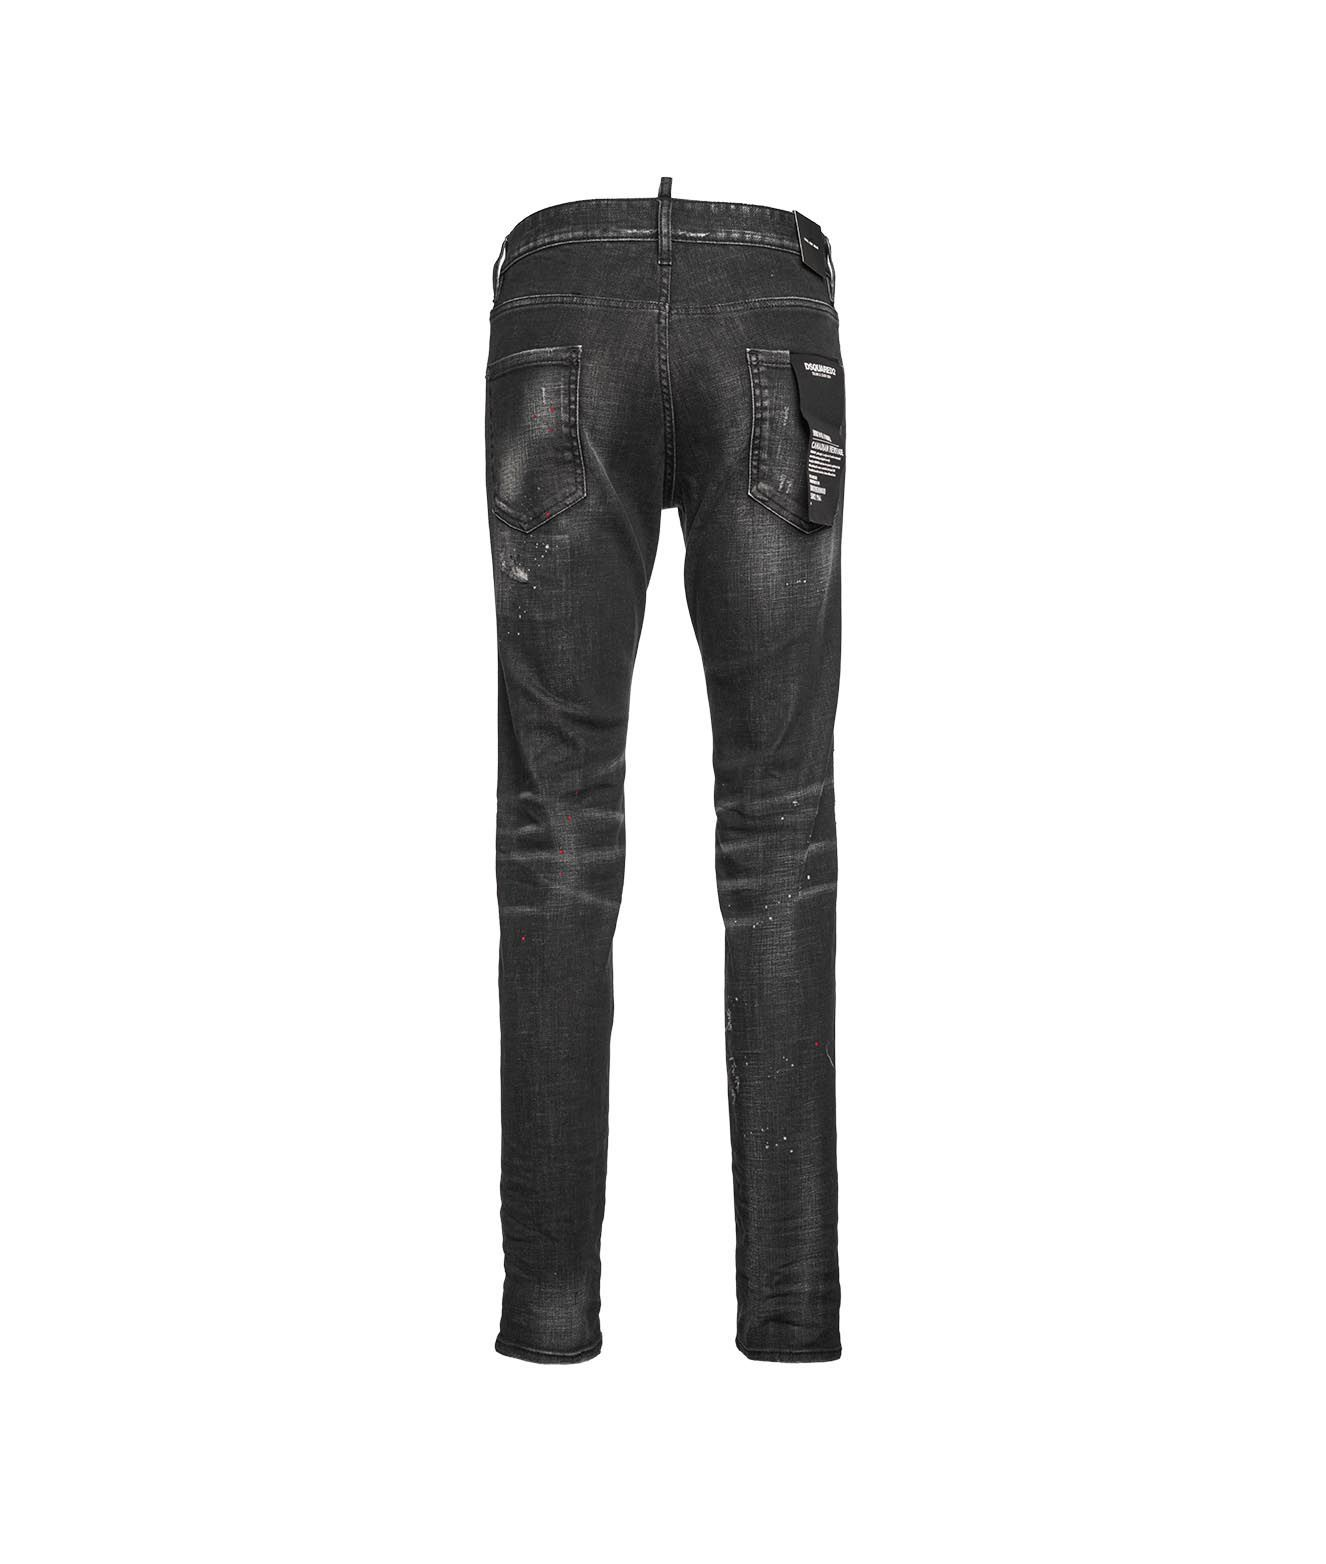 DSQUARED2 Jeans DSQUARED2 MEN'S GREY OTHER MATERIALS JEANS